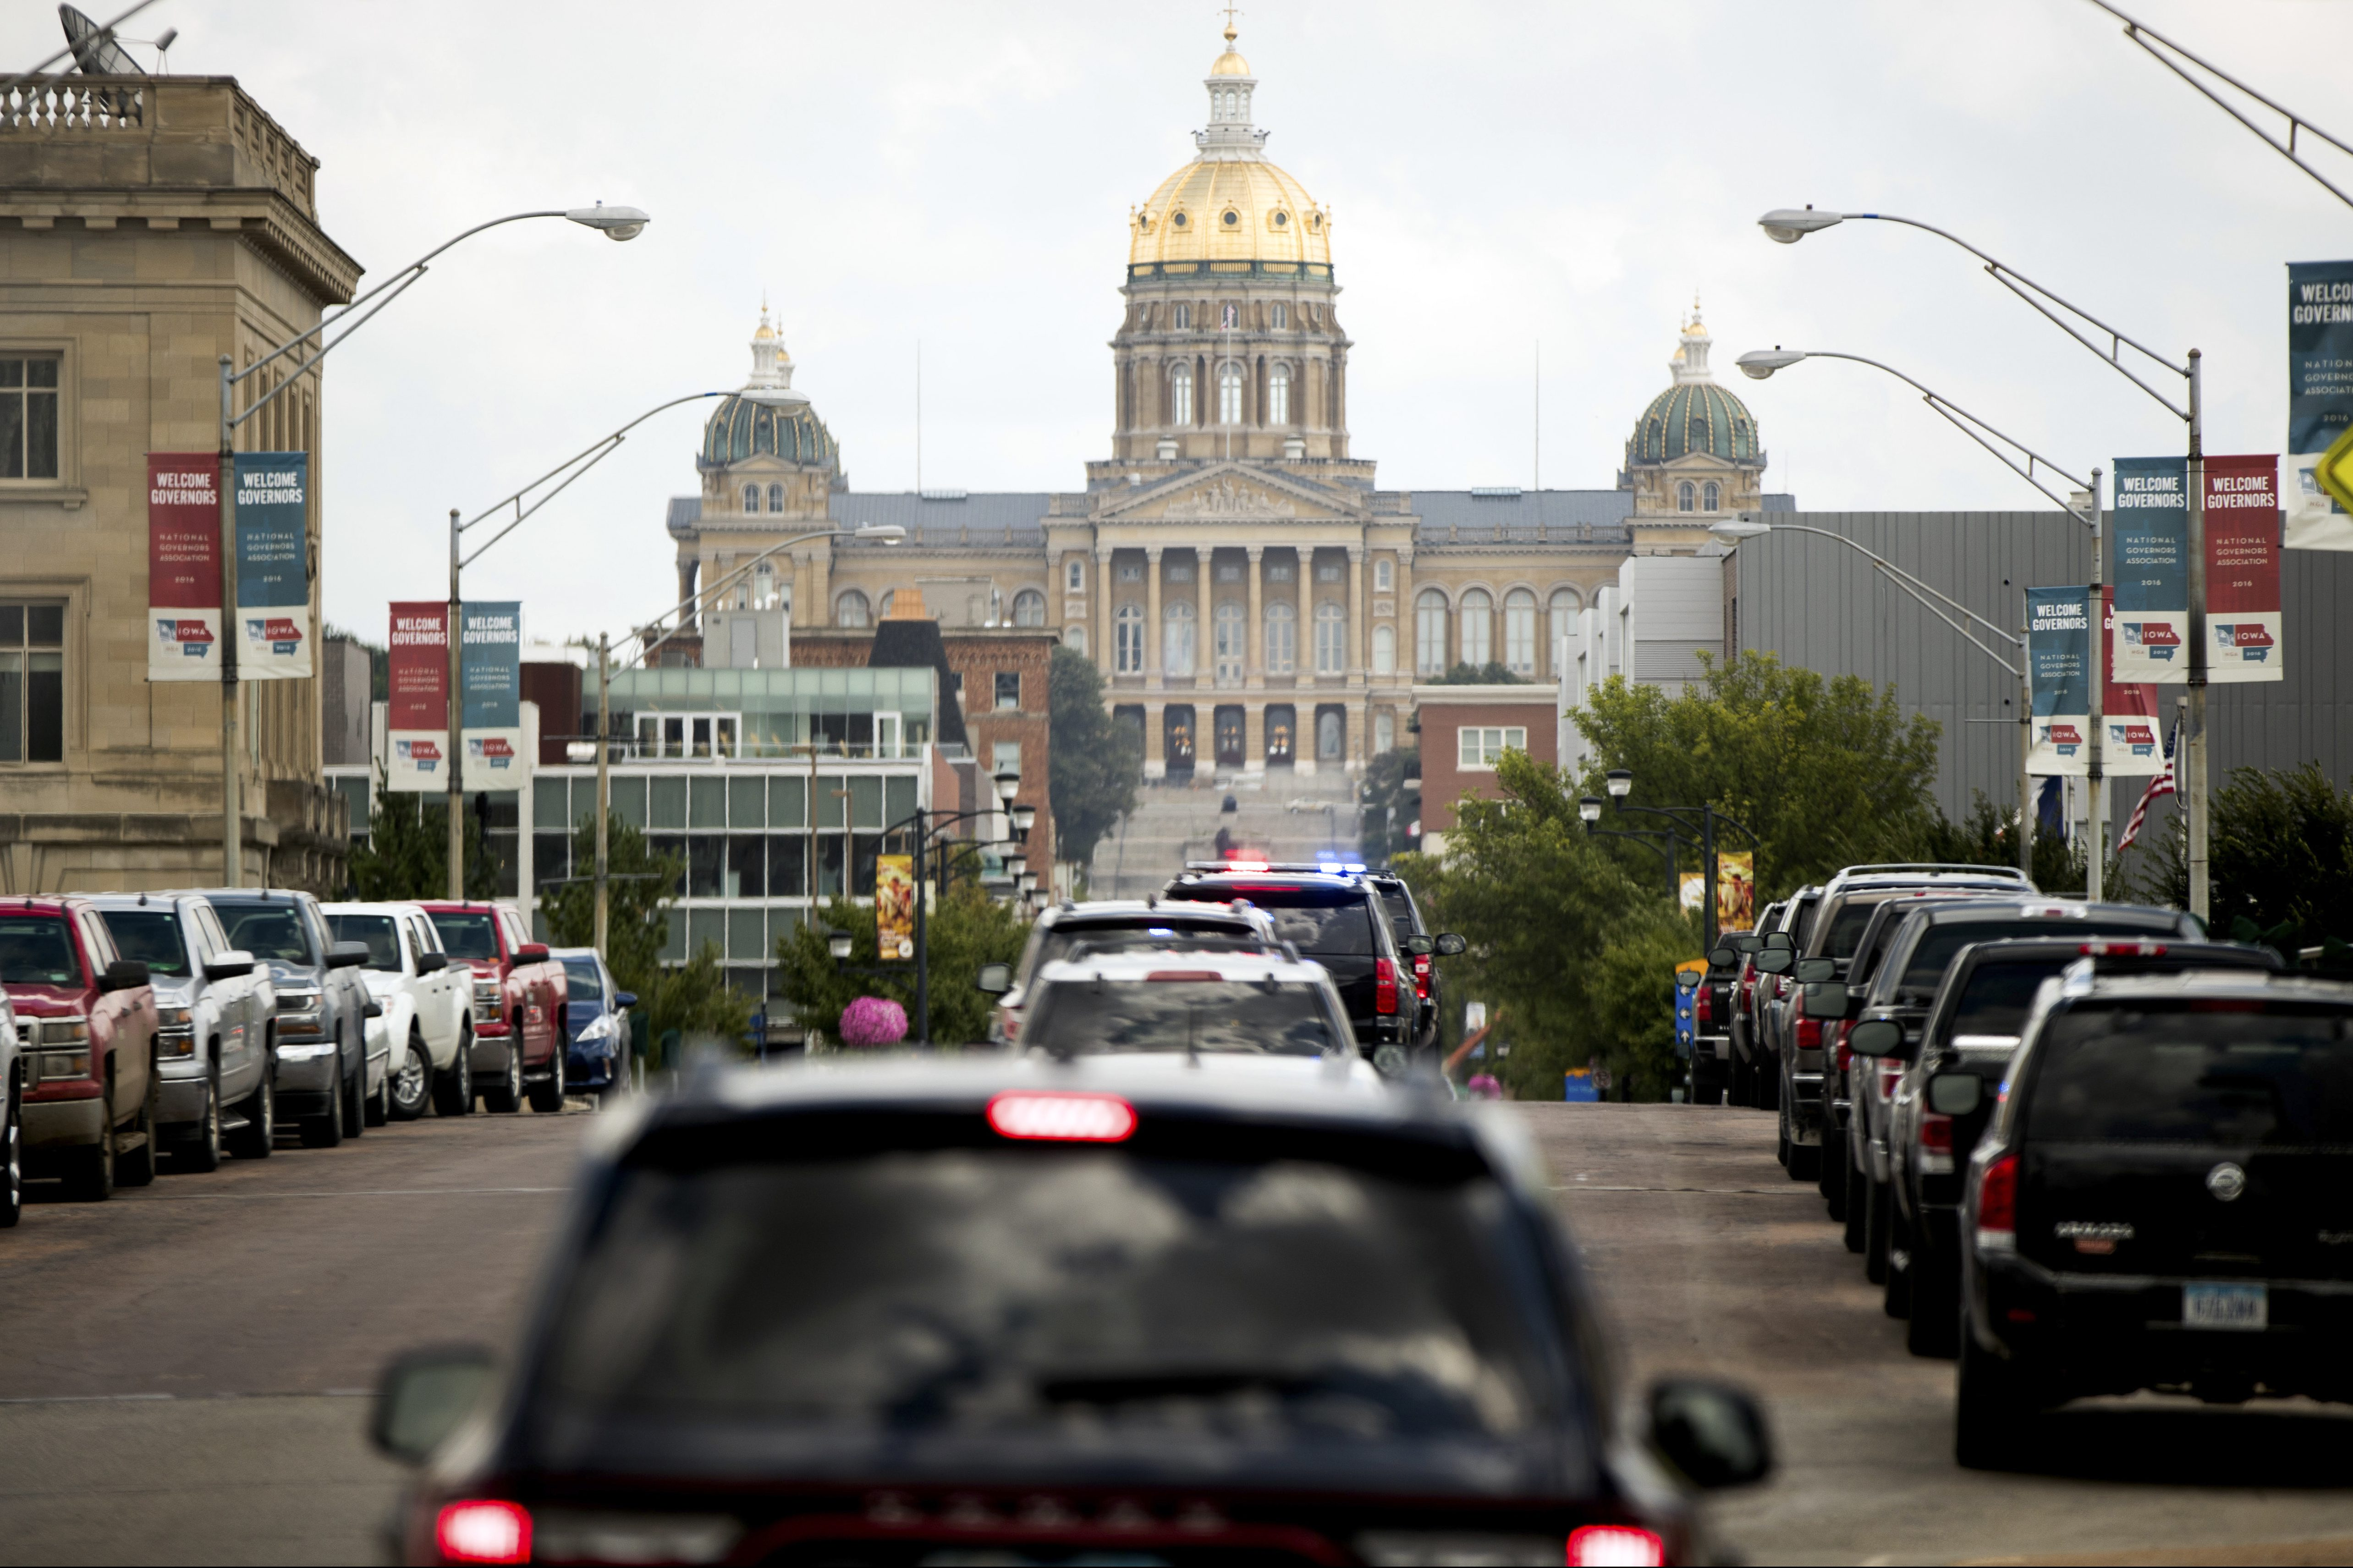 The Iowa State Capitol Building is visible in the background as the motorcade carrying Democratic presidential candidate Hillary Clinton heads towards Raygun, a printing, design and clothing company, in Des Moines, Iowa, Wednesday, Aug. 10, 2016. (AP Photo/Andrew Harnik)